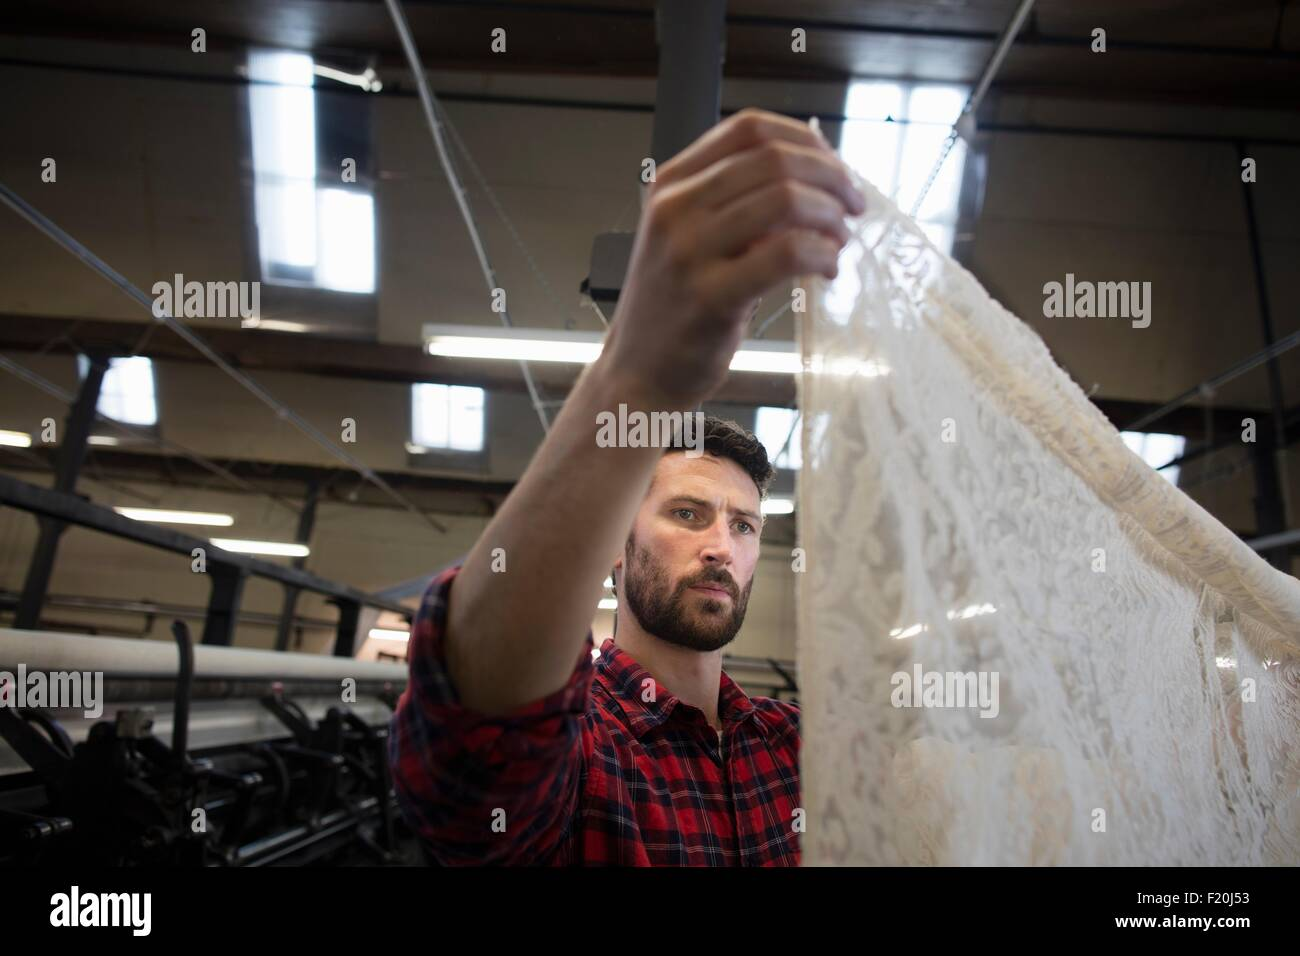 Portrait of male weaver examining lace cloth from old weaving machine in textile mill - Stock Image